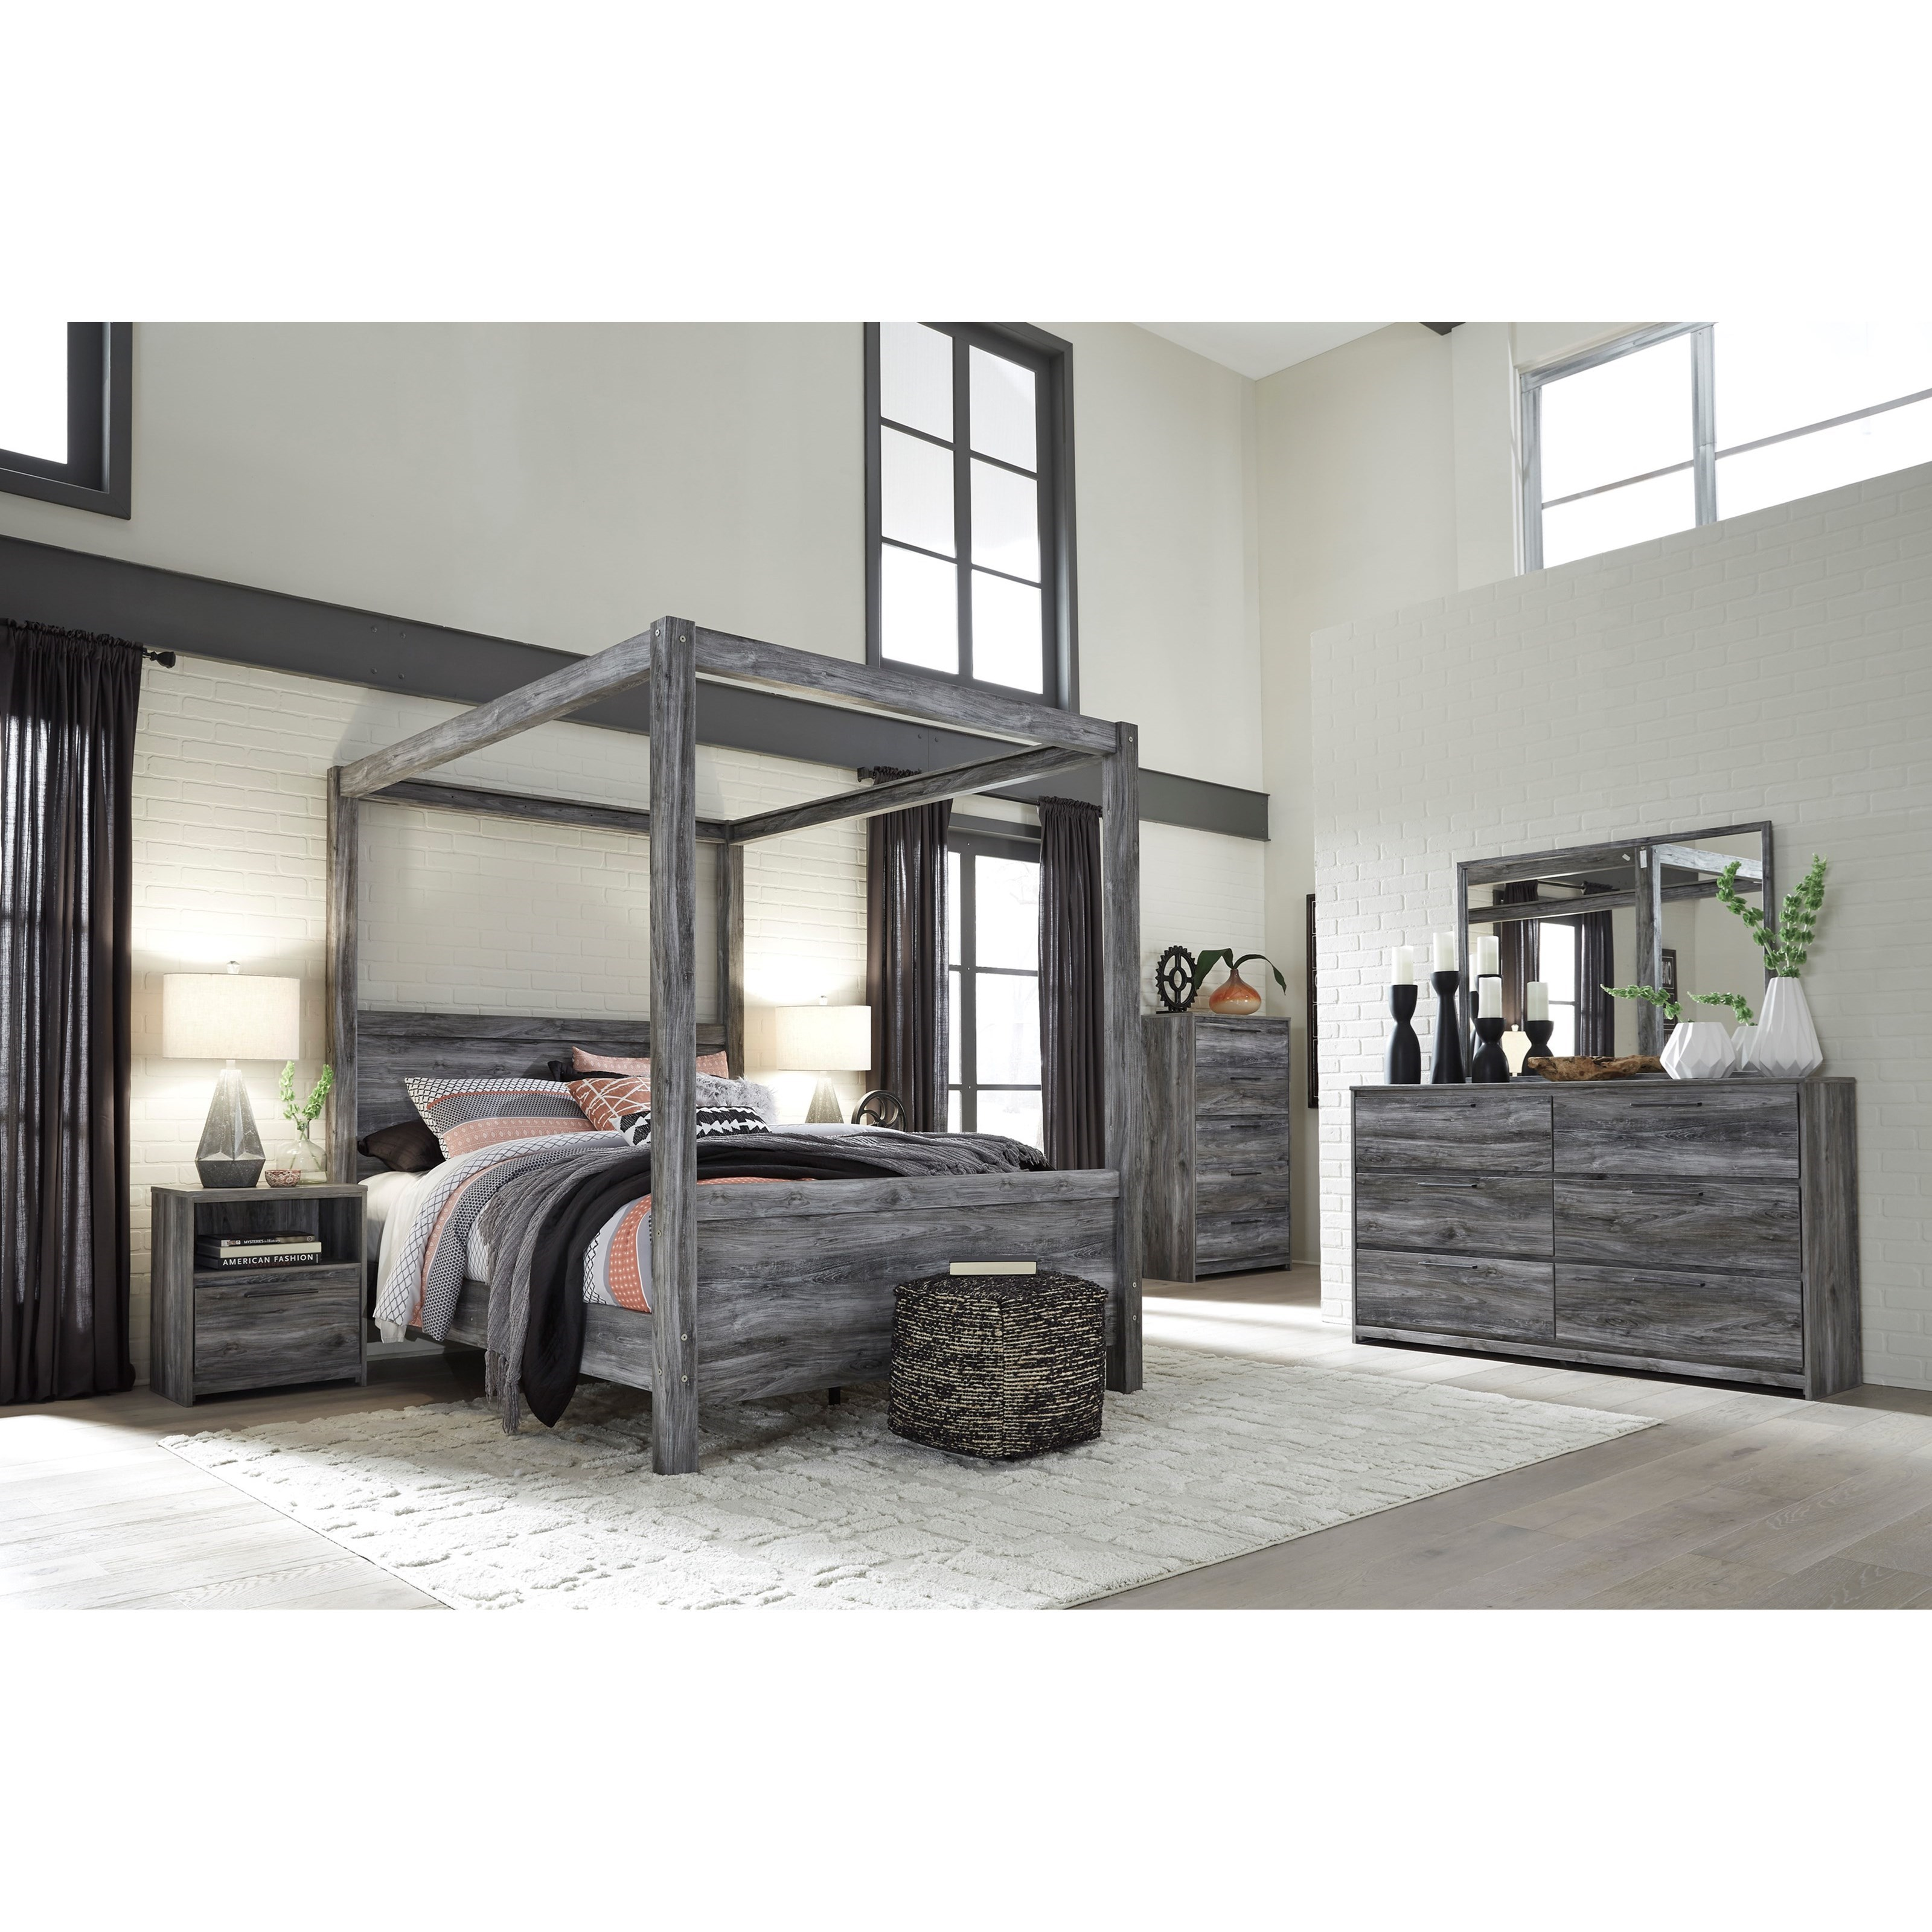 Baystorm Full Size Storage Bed B221: Signature Design By Ashley Baystorm Queen Canopy Bed In